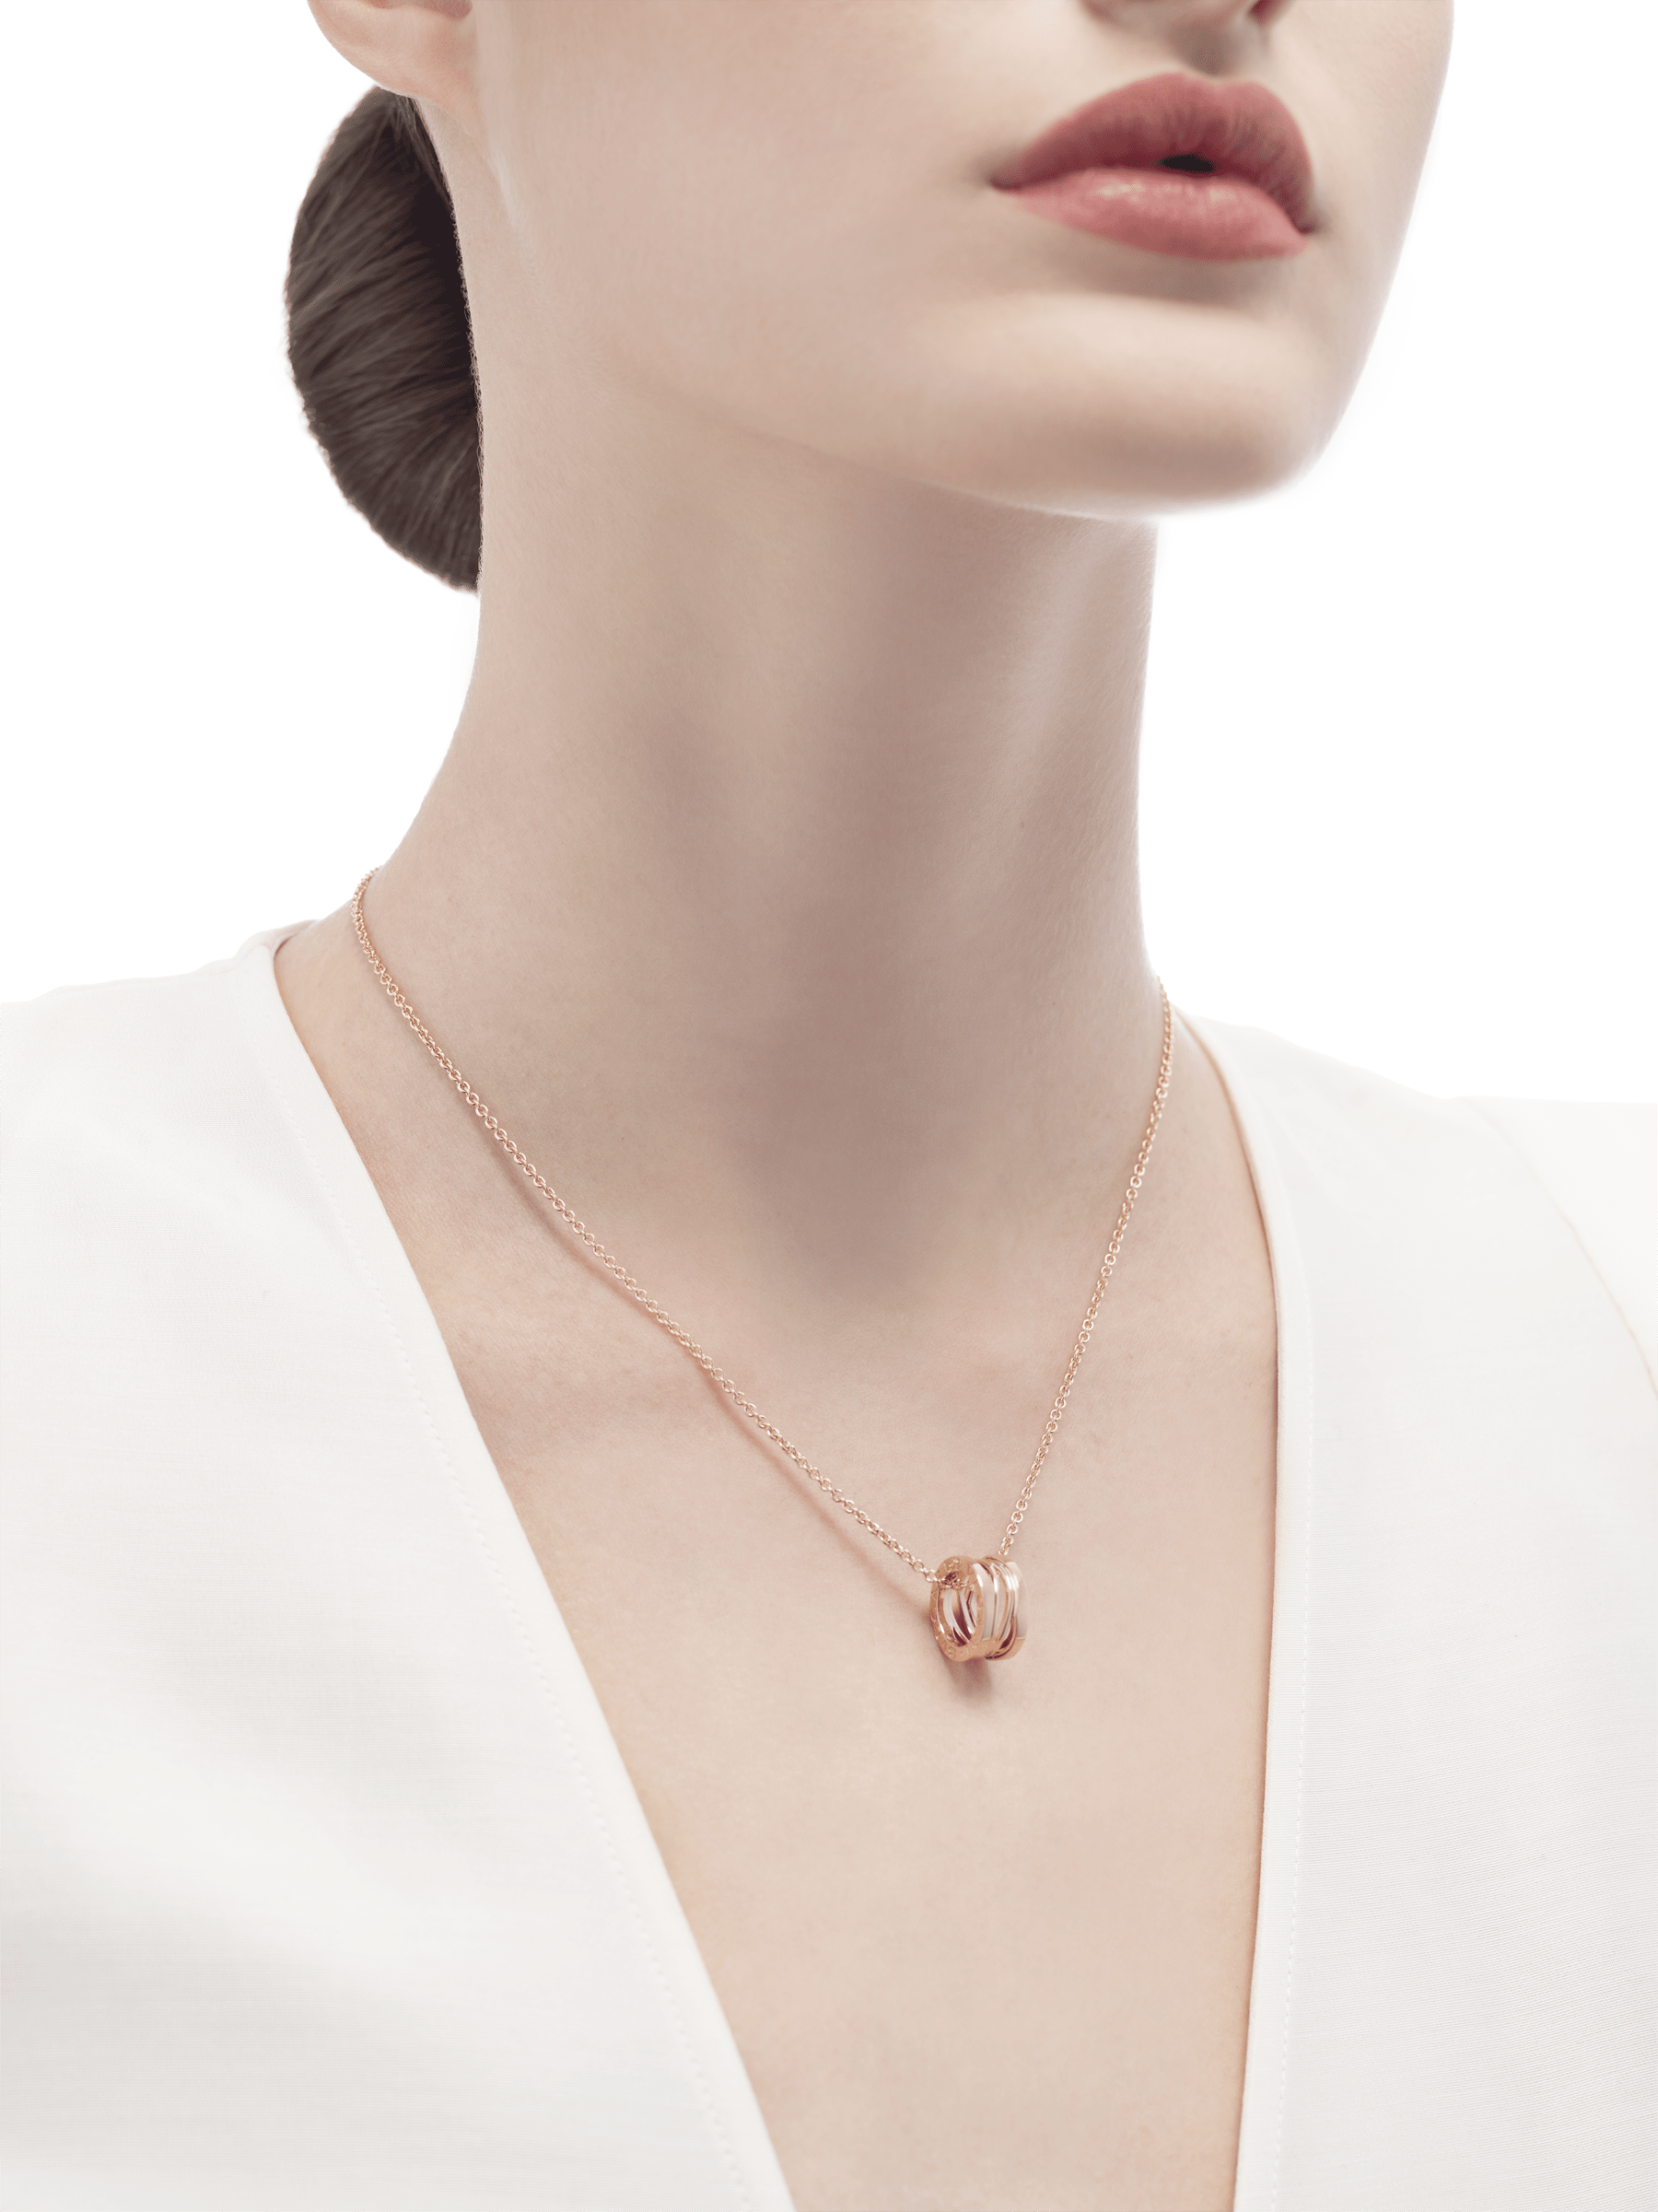 B.zero1 Design Legend necklace with pendant, both in 18 kt rose gold. 353795 image 4